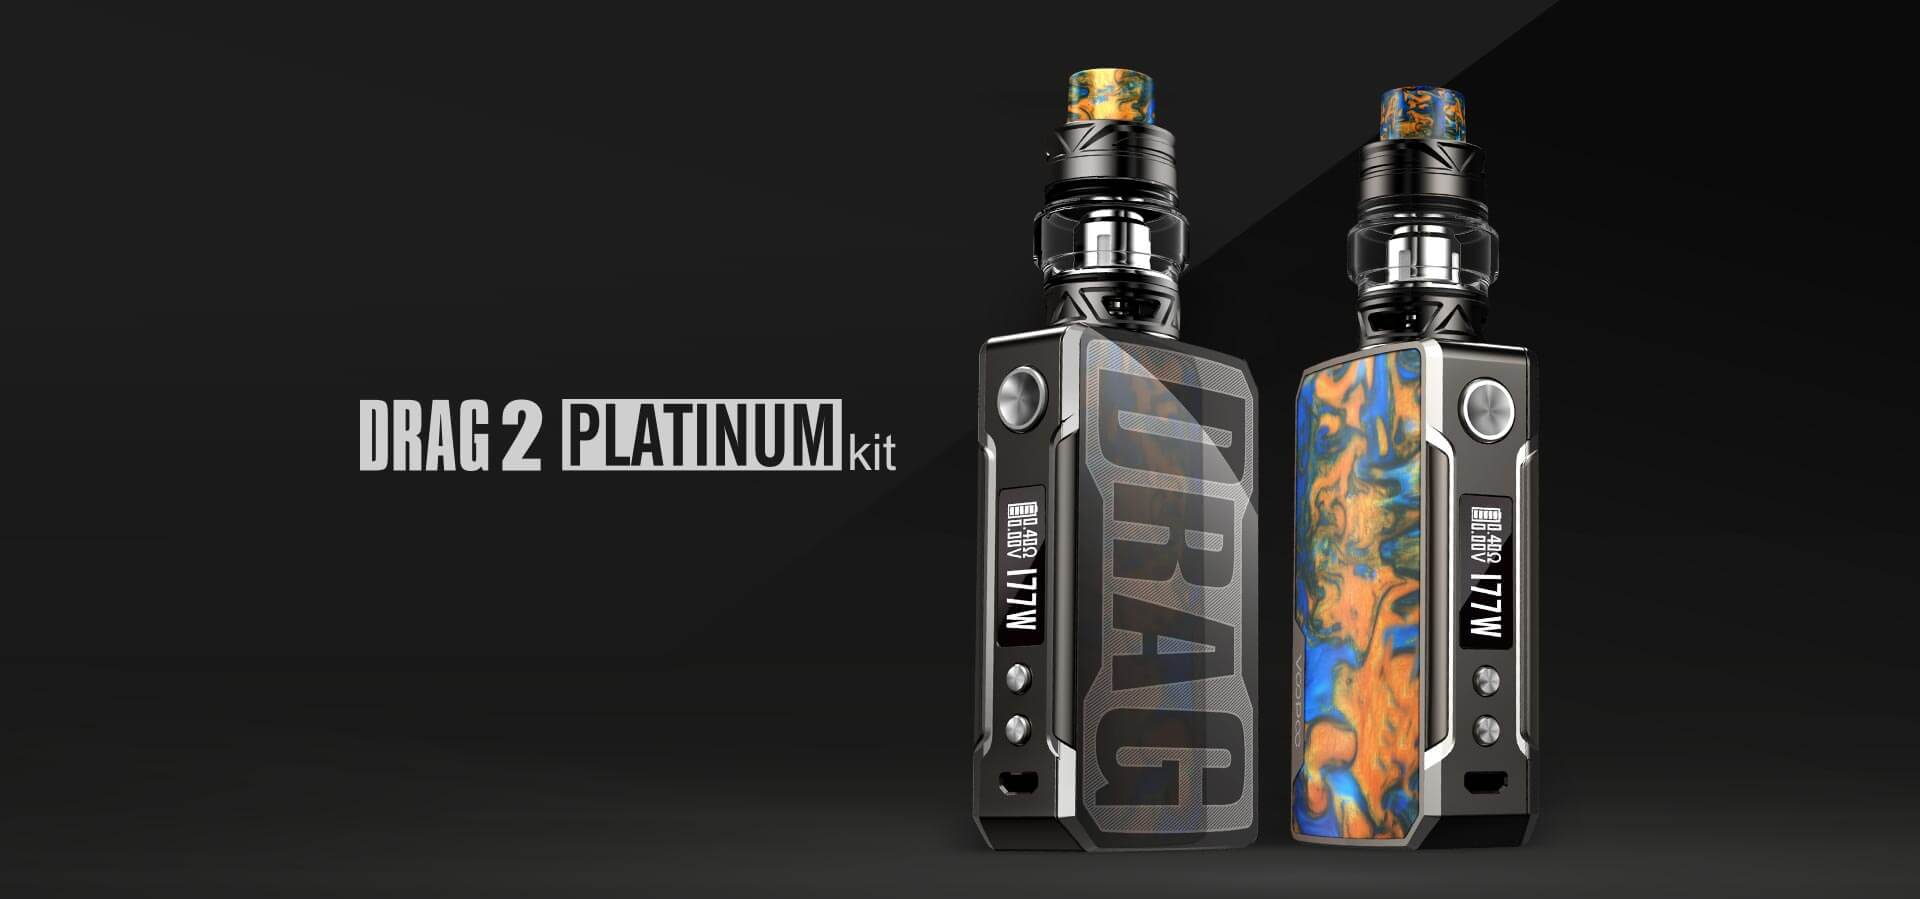 drag 2 platinum kit (1)